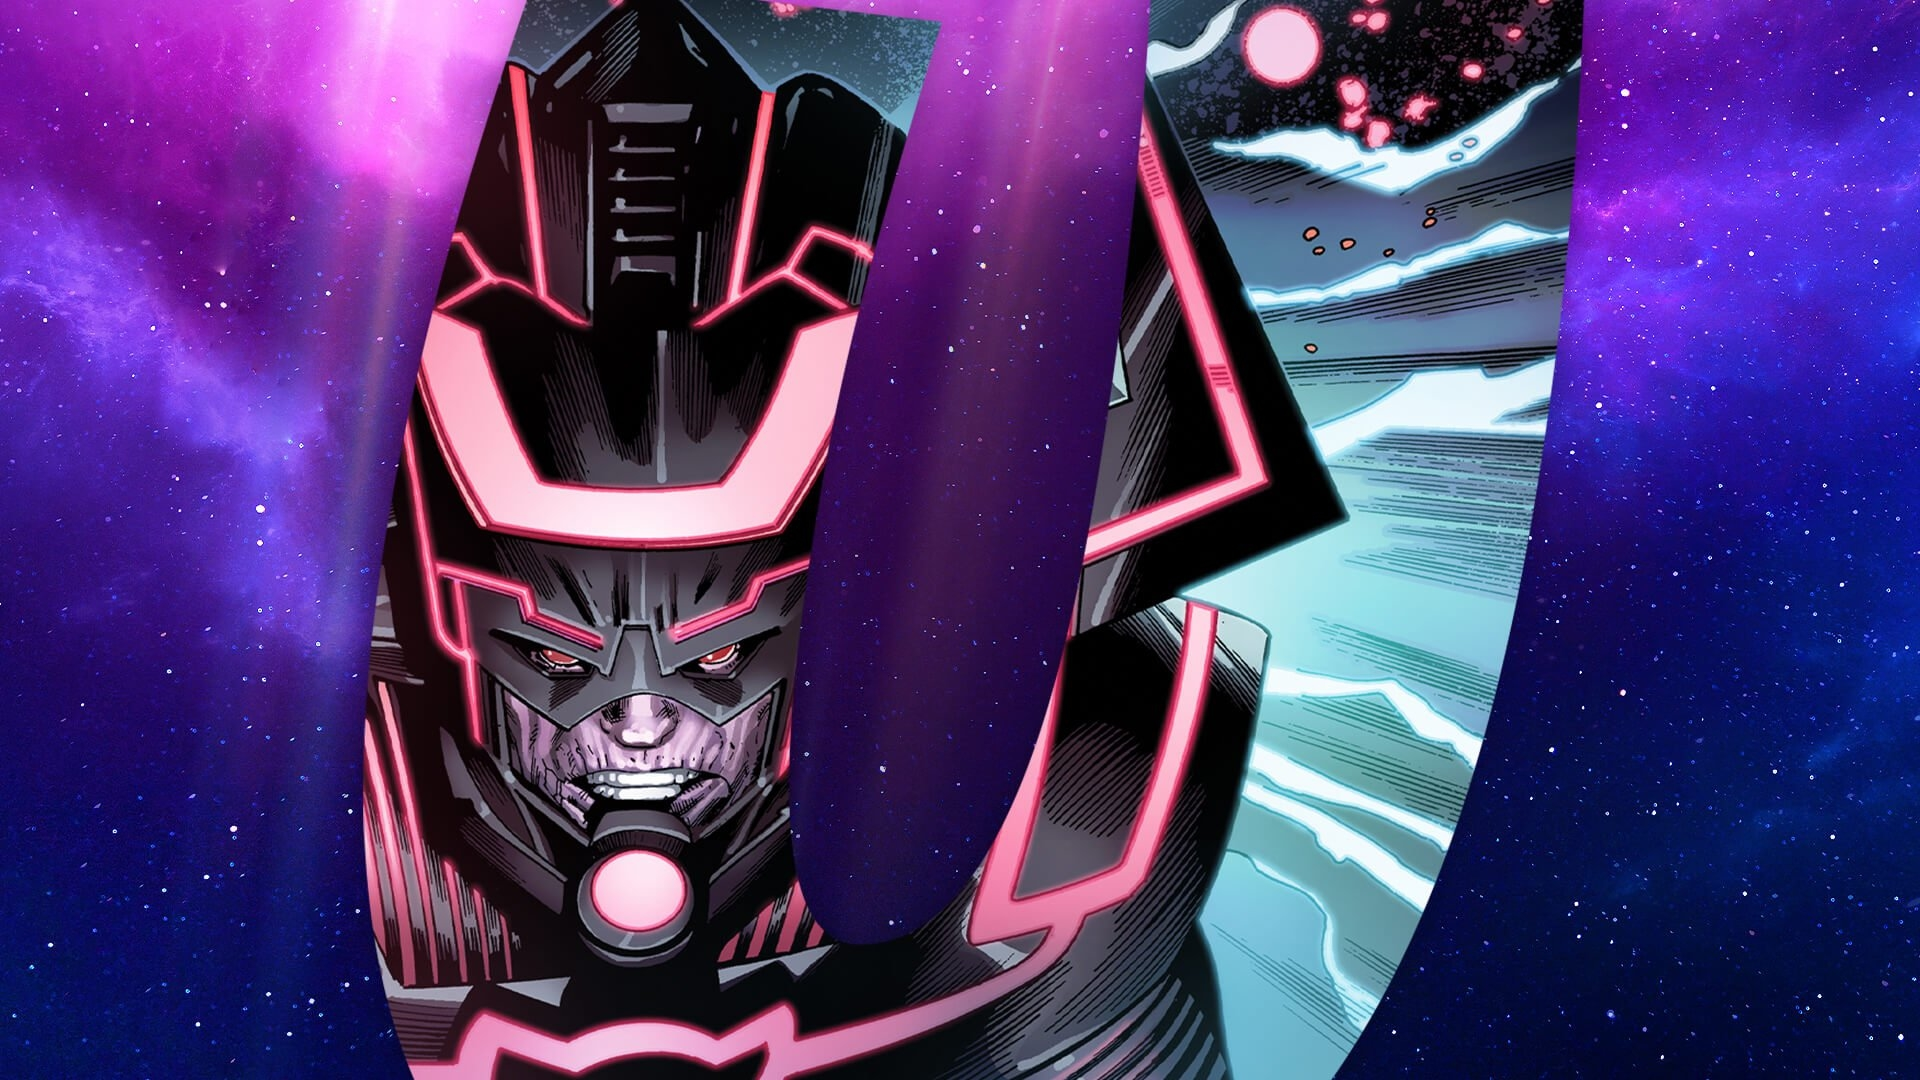 Fortnite Marvel Galactus Wallpaper Hd Games 4k Wallpapers Images Photos And Background